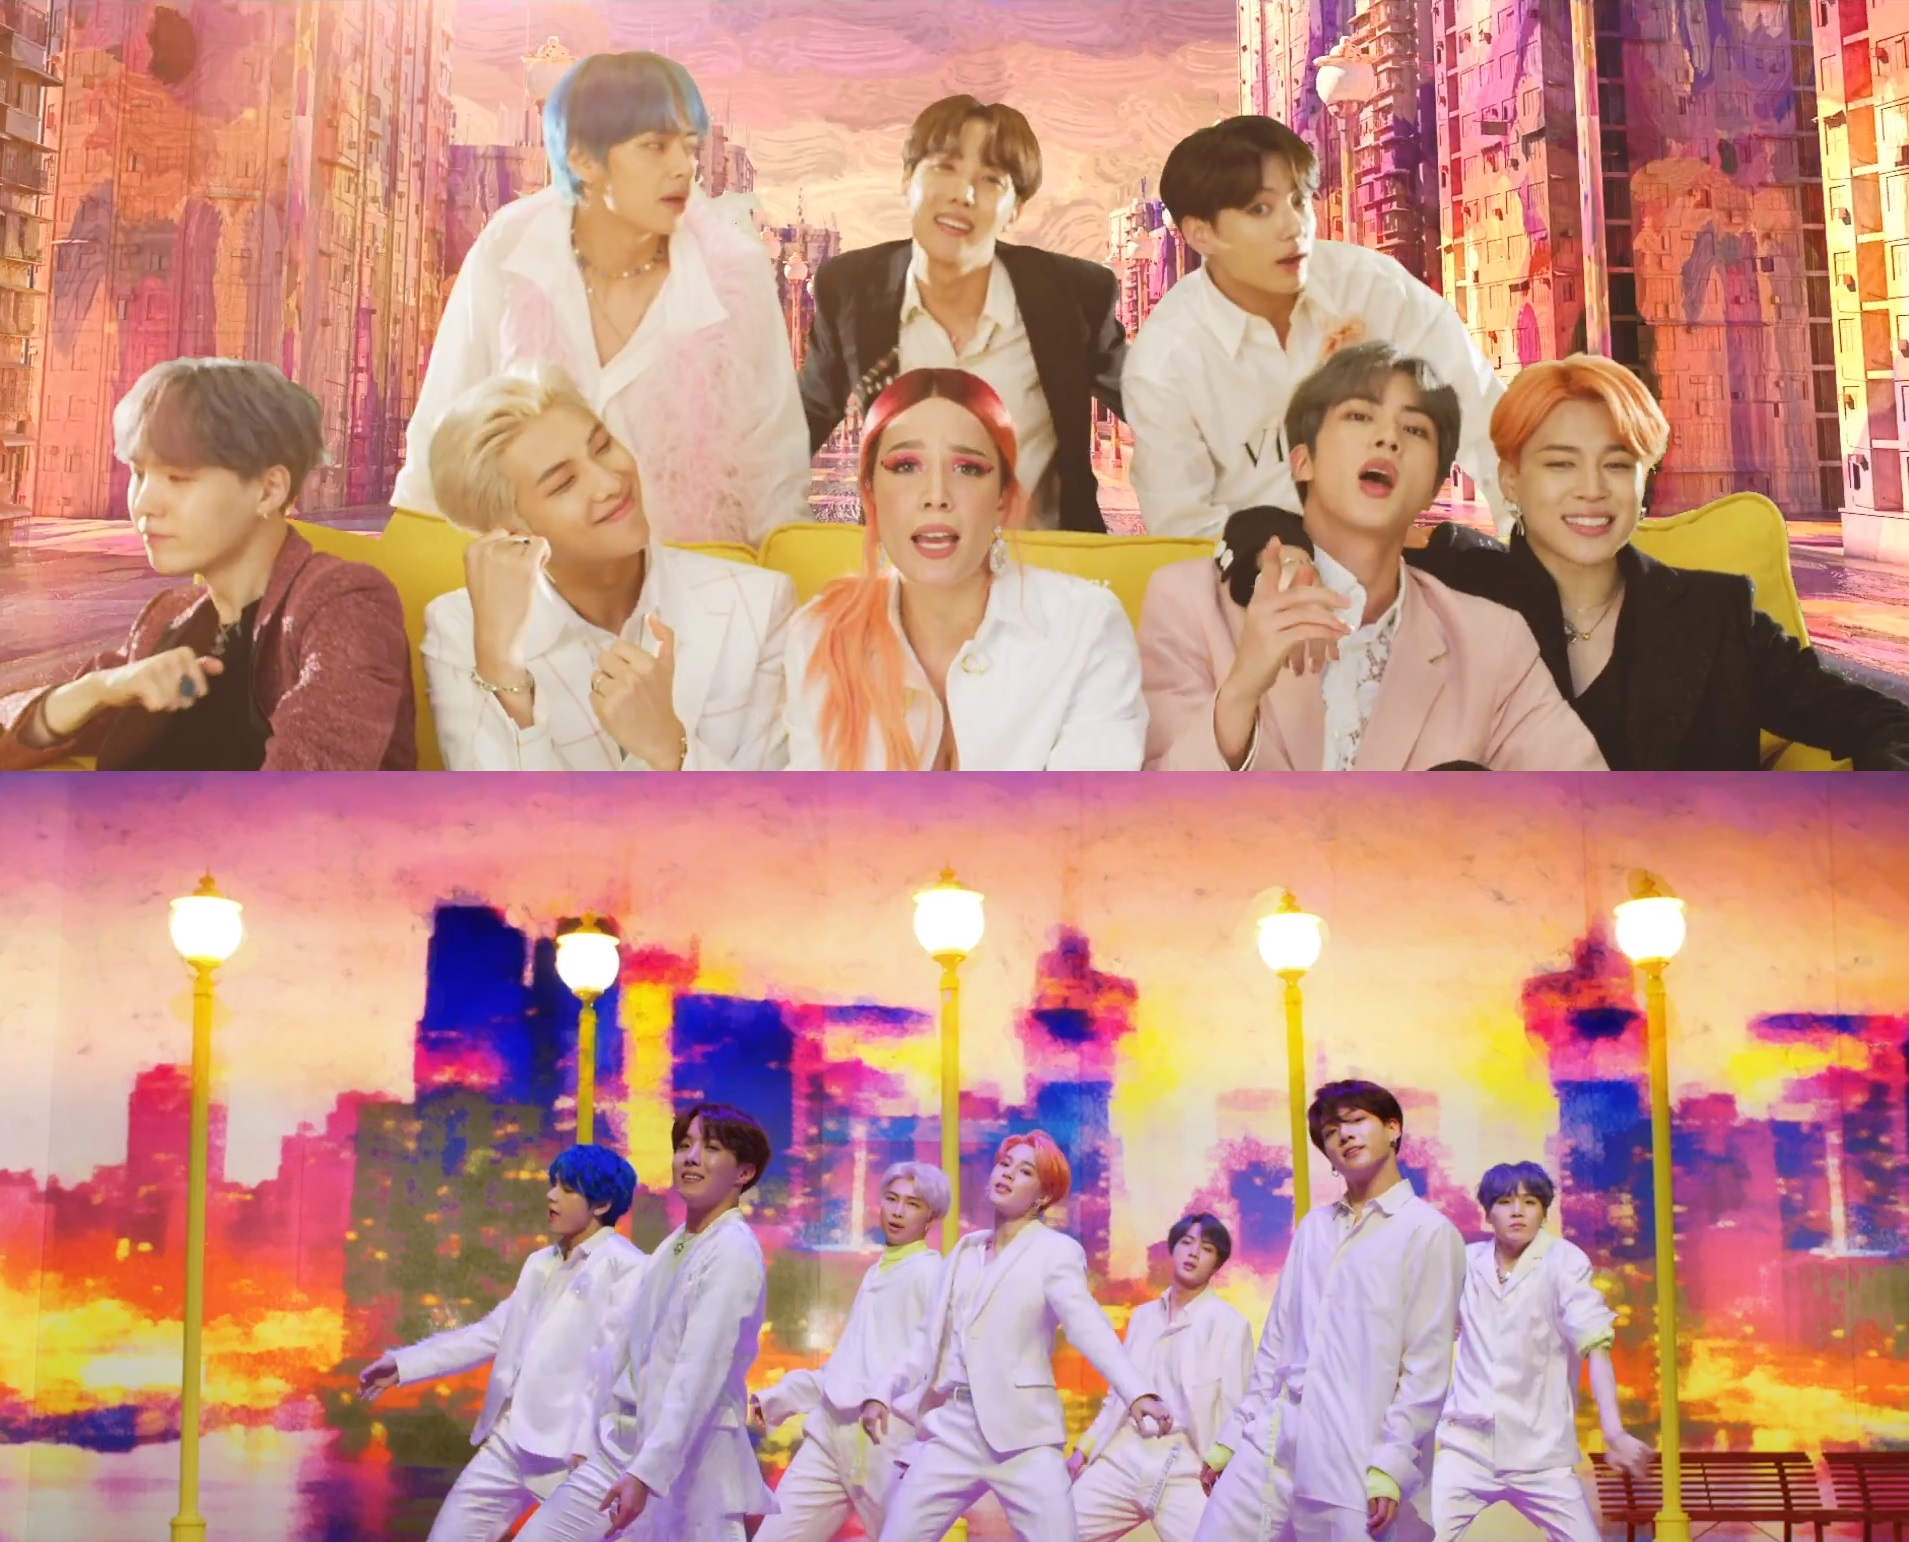 bts video songs download hd